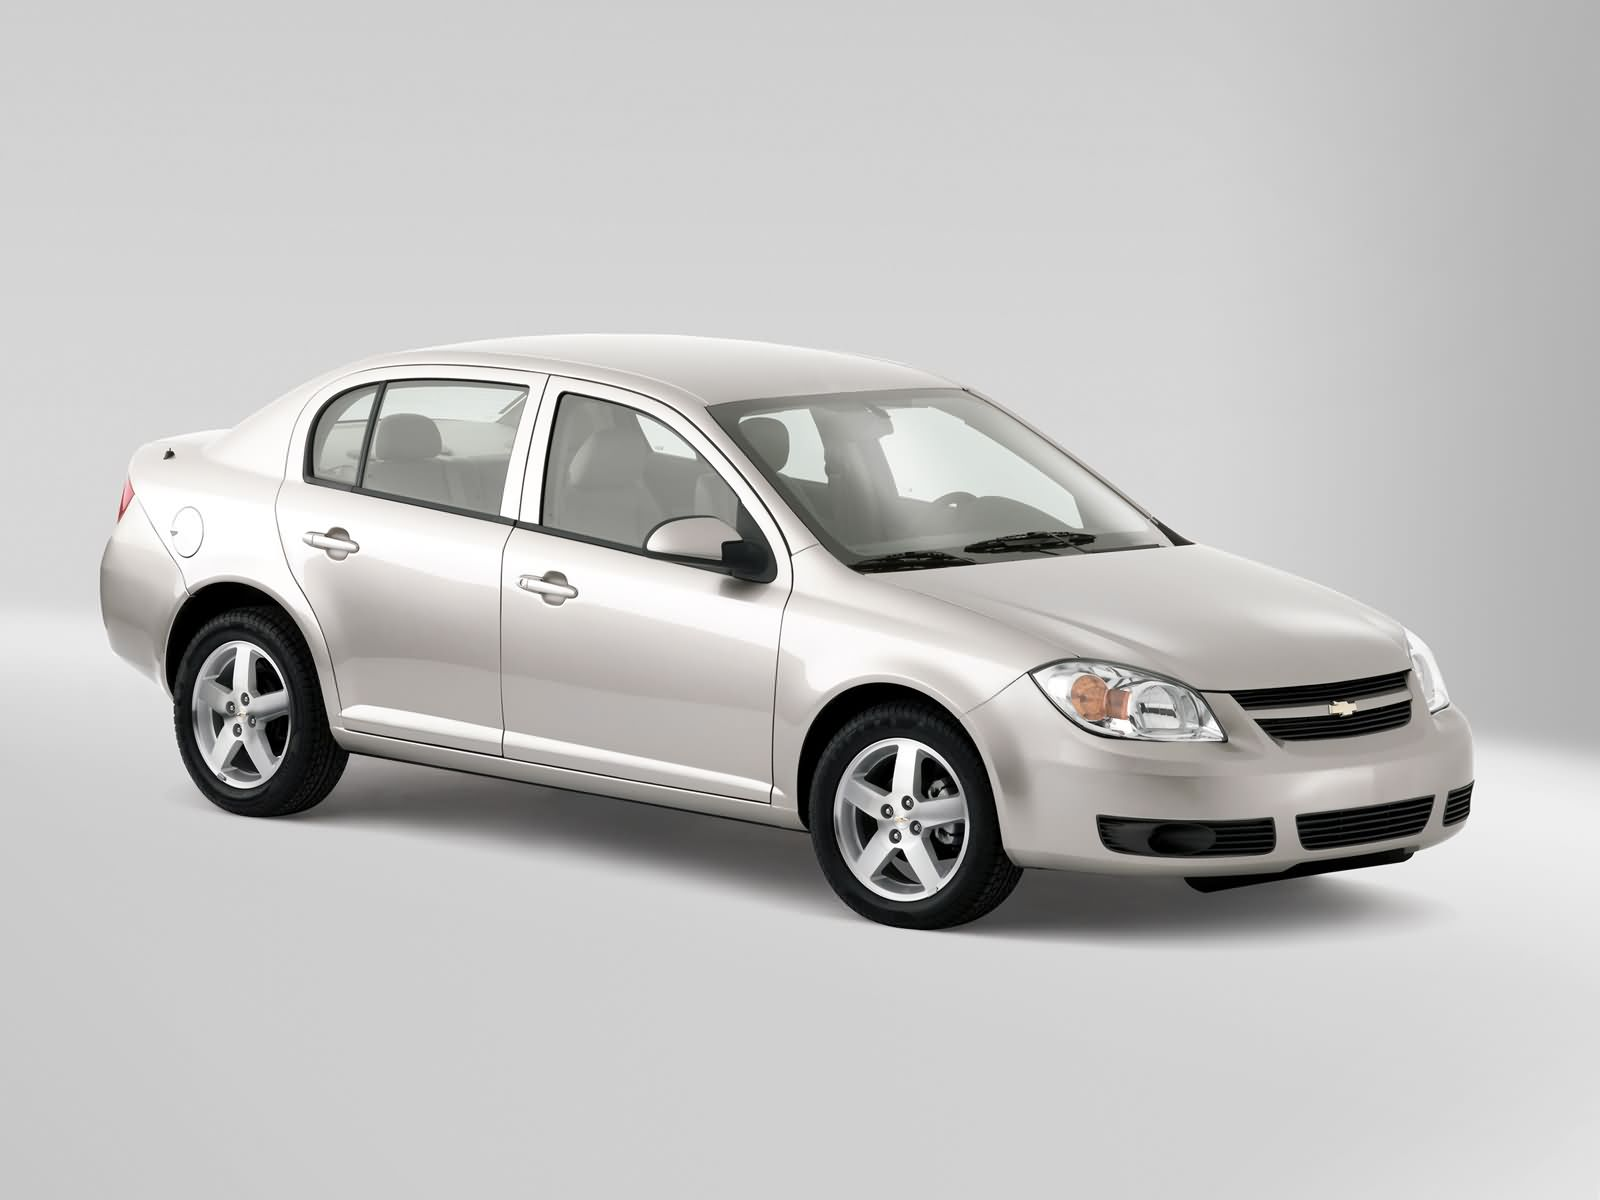 Chevrolet Cobalt photo 7655